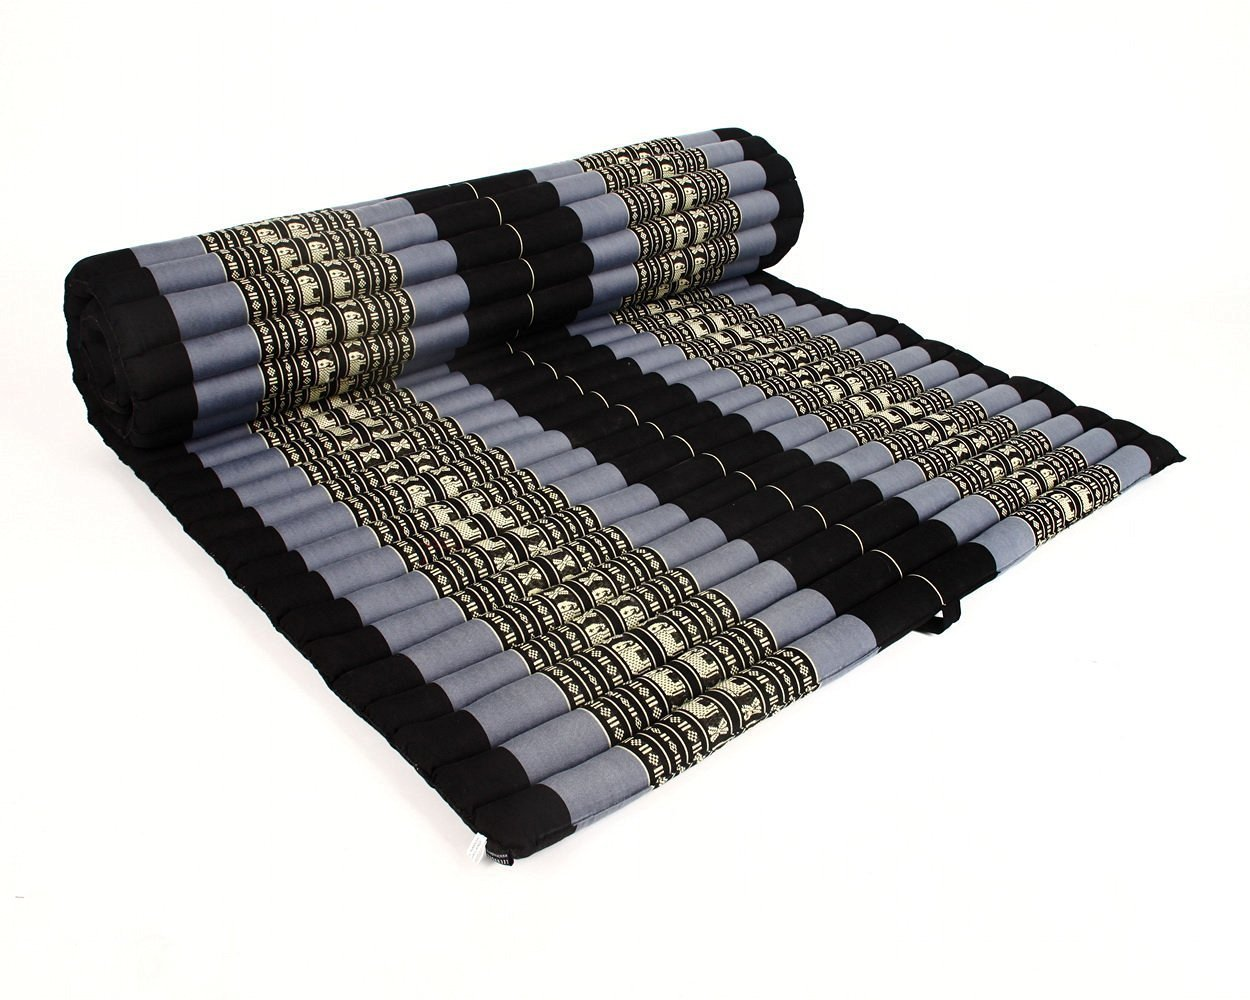 Design by UnseenThailand Roll Up Thai Mattress, Kapok Fabric, Premium Double Stitched, 79x41x2 inches. (Black - Blue) by UnseenThailand Warehouse